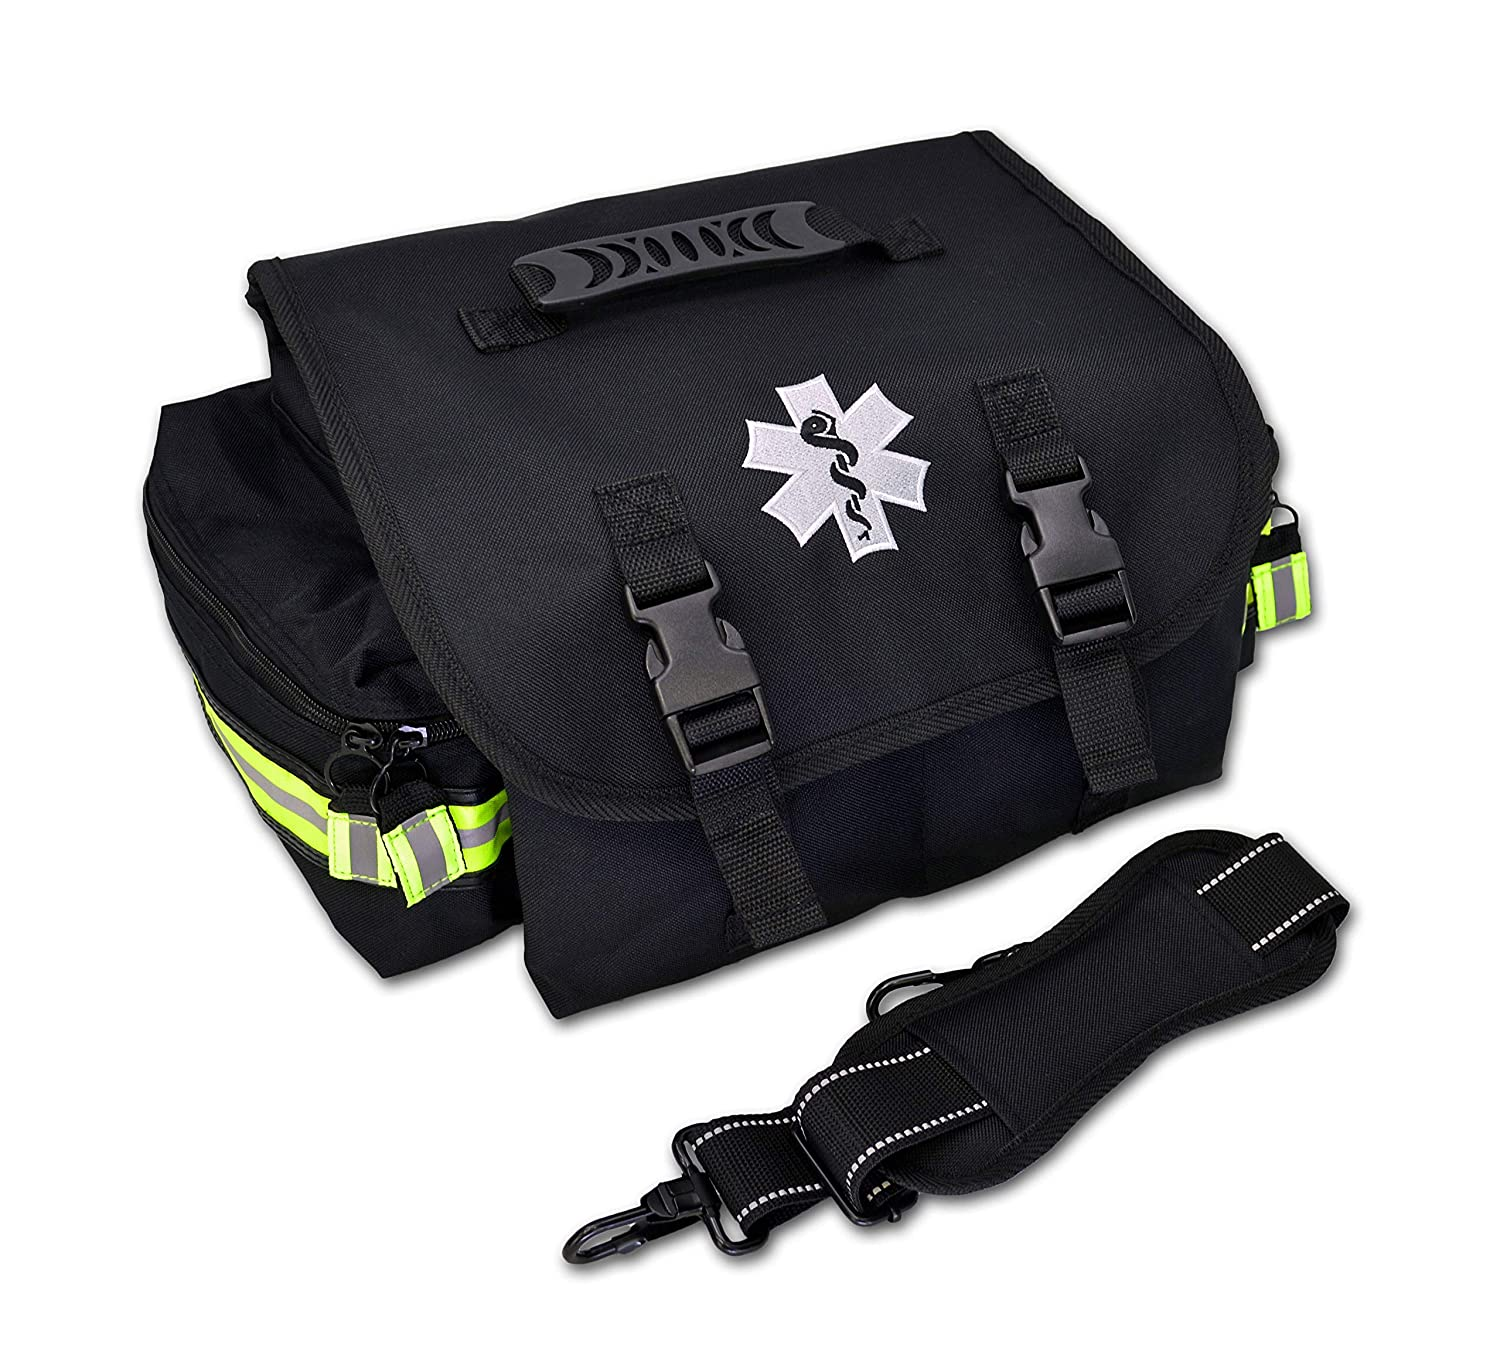 Lightning X Small EMT Medic First Responder Trauma EMS Jump Bag w/Dividers (Stealth Black) Lightning X Products Inc